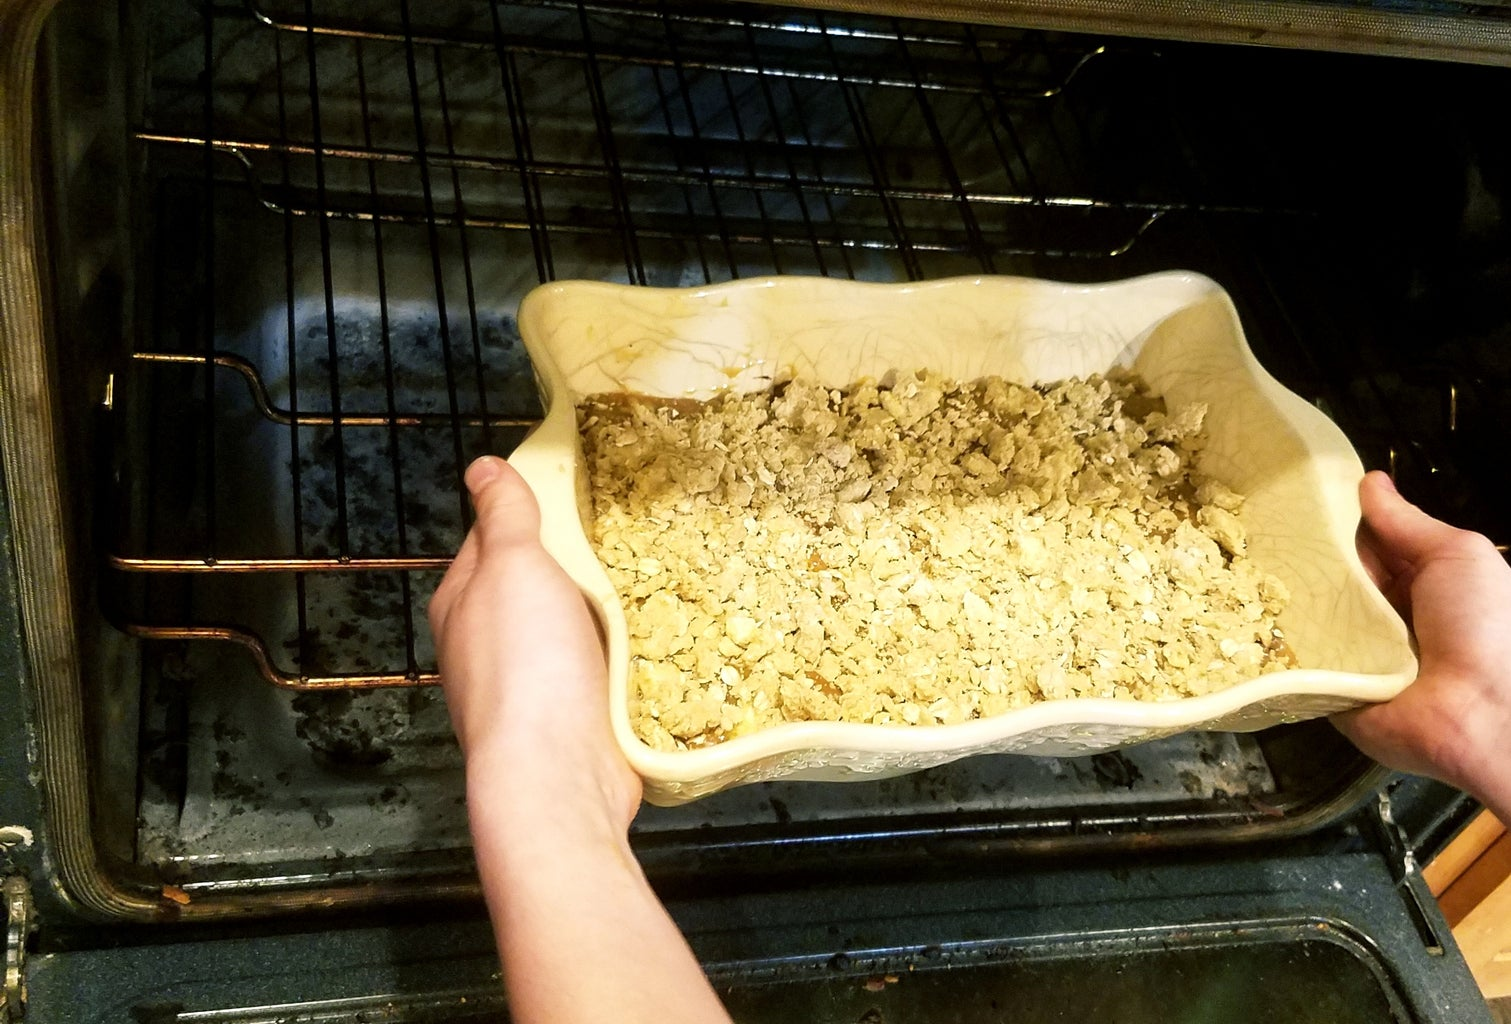 Place in the Oven to Bake